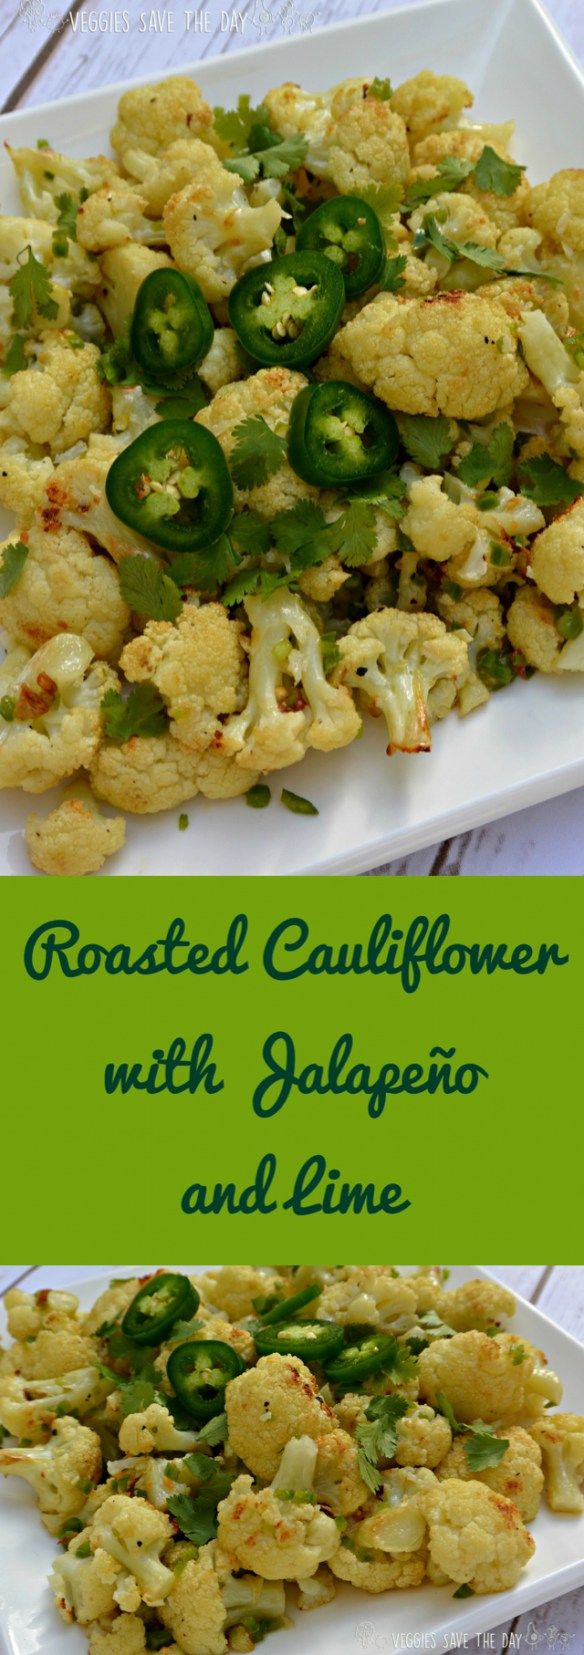 Roasted Cauliflower with Jalapeno and Lime